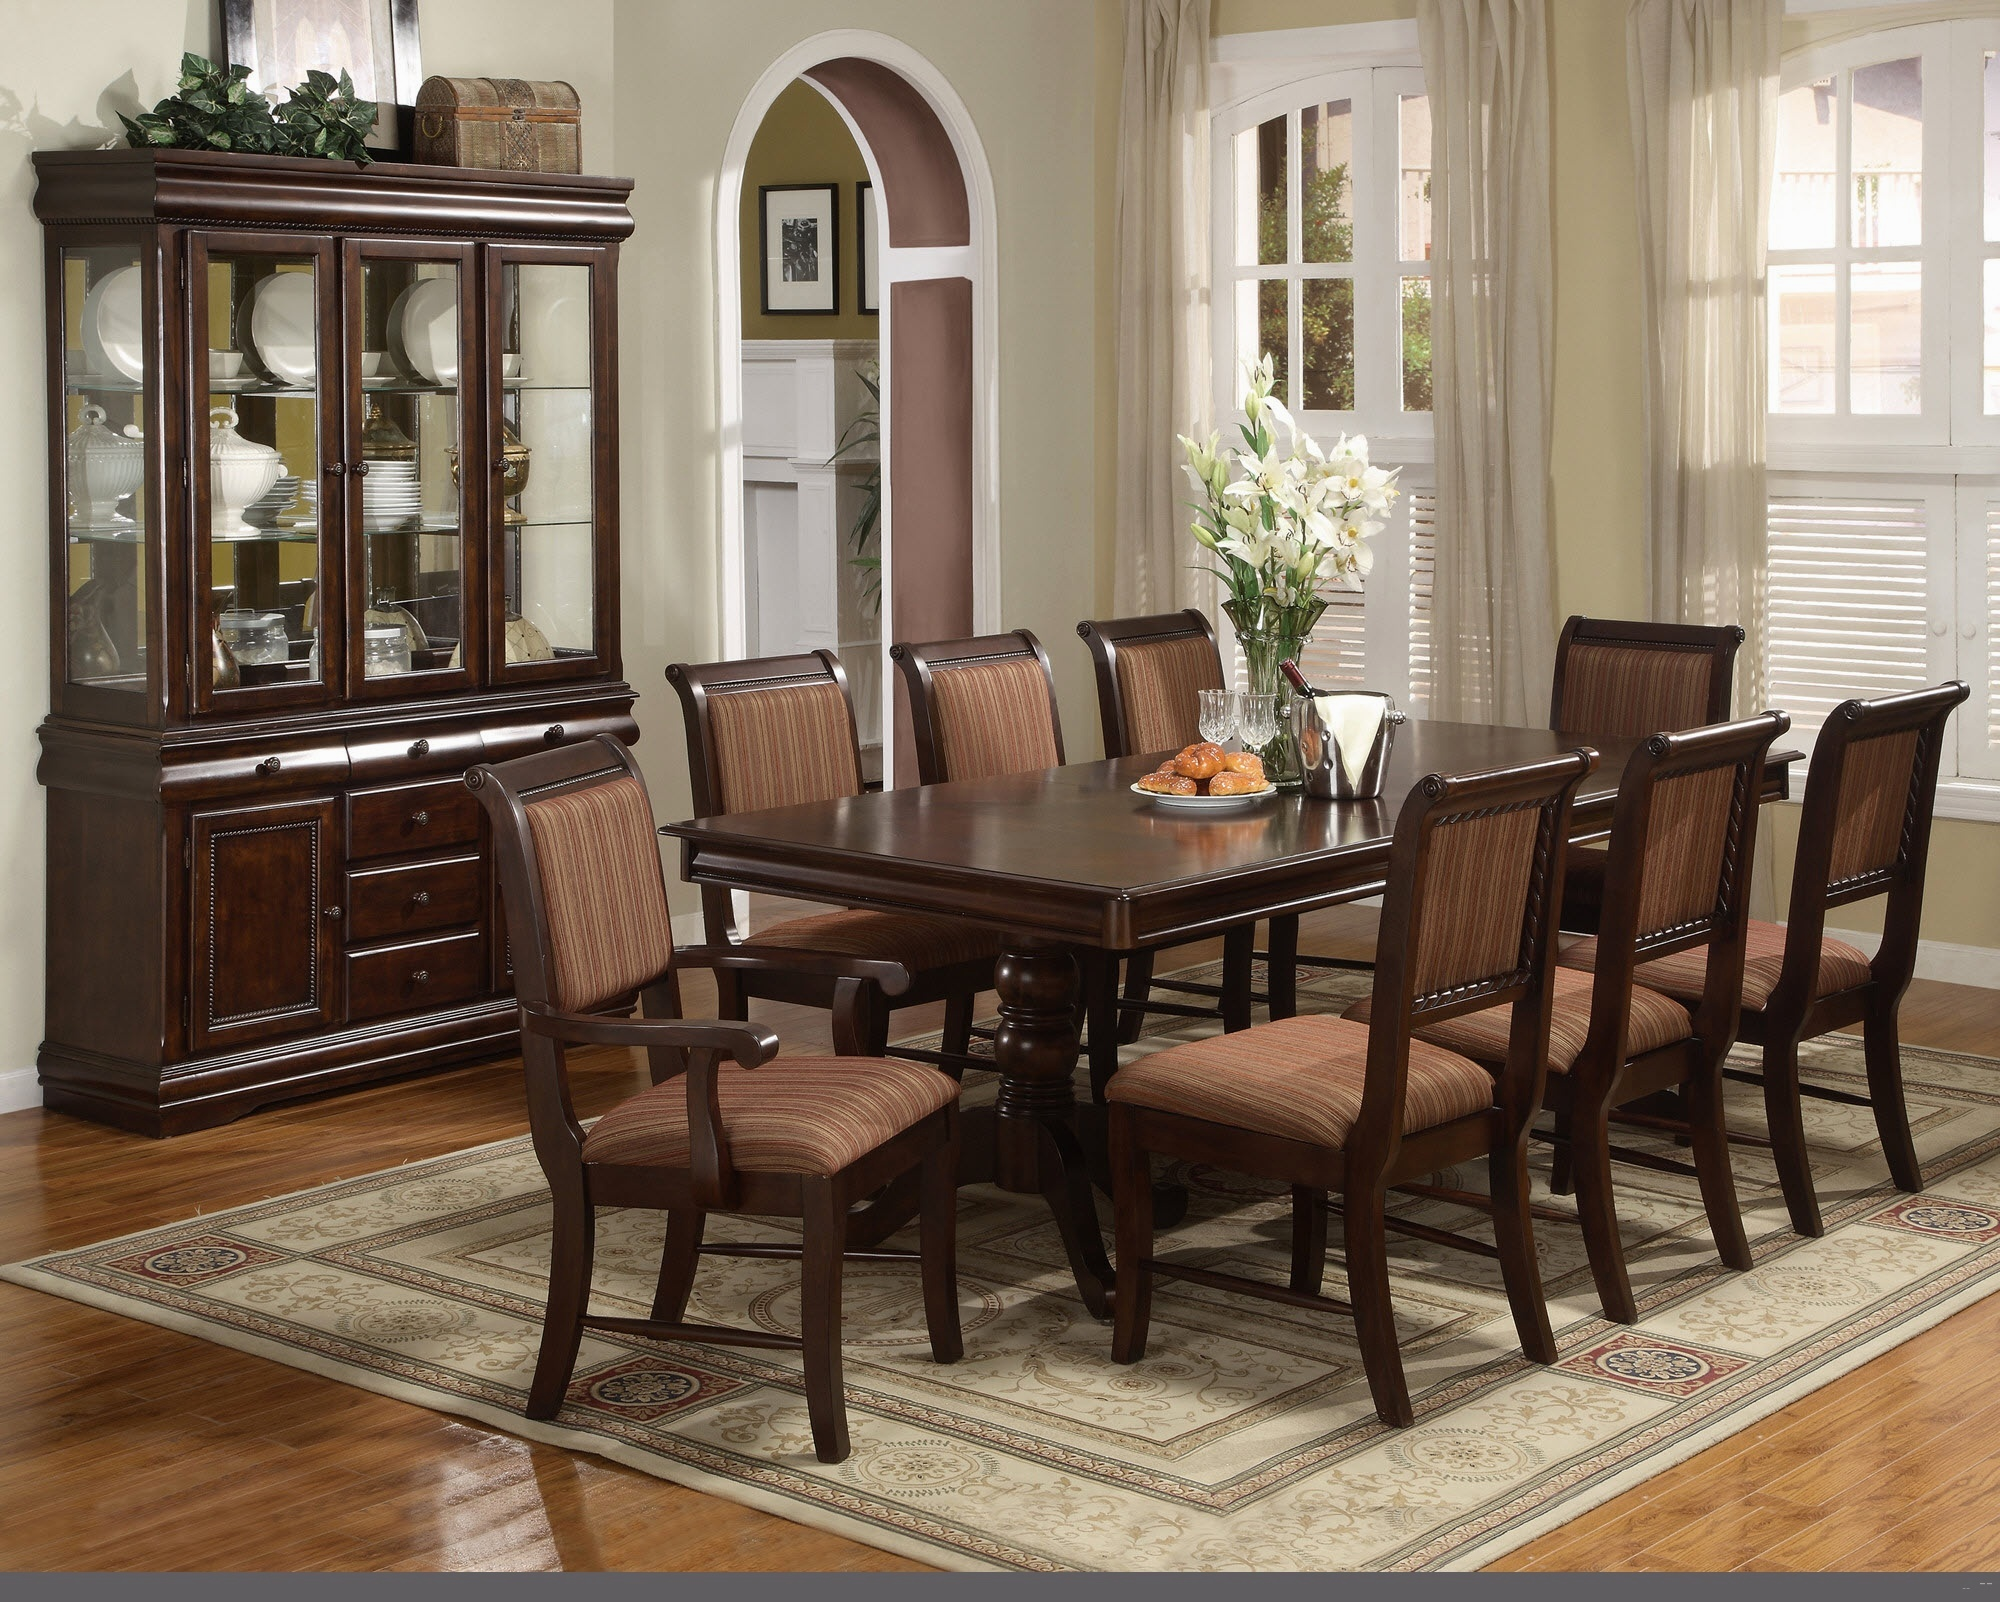 Cool Drapes For Formal Dining Room Contemporary - 3D house designs ...